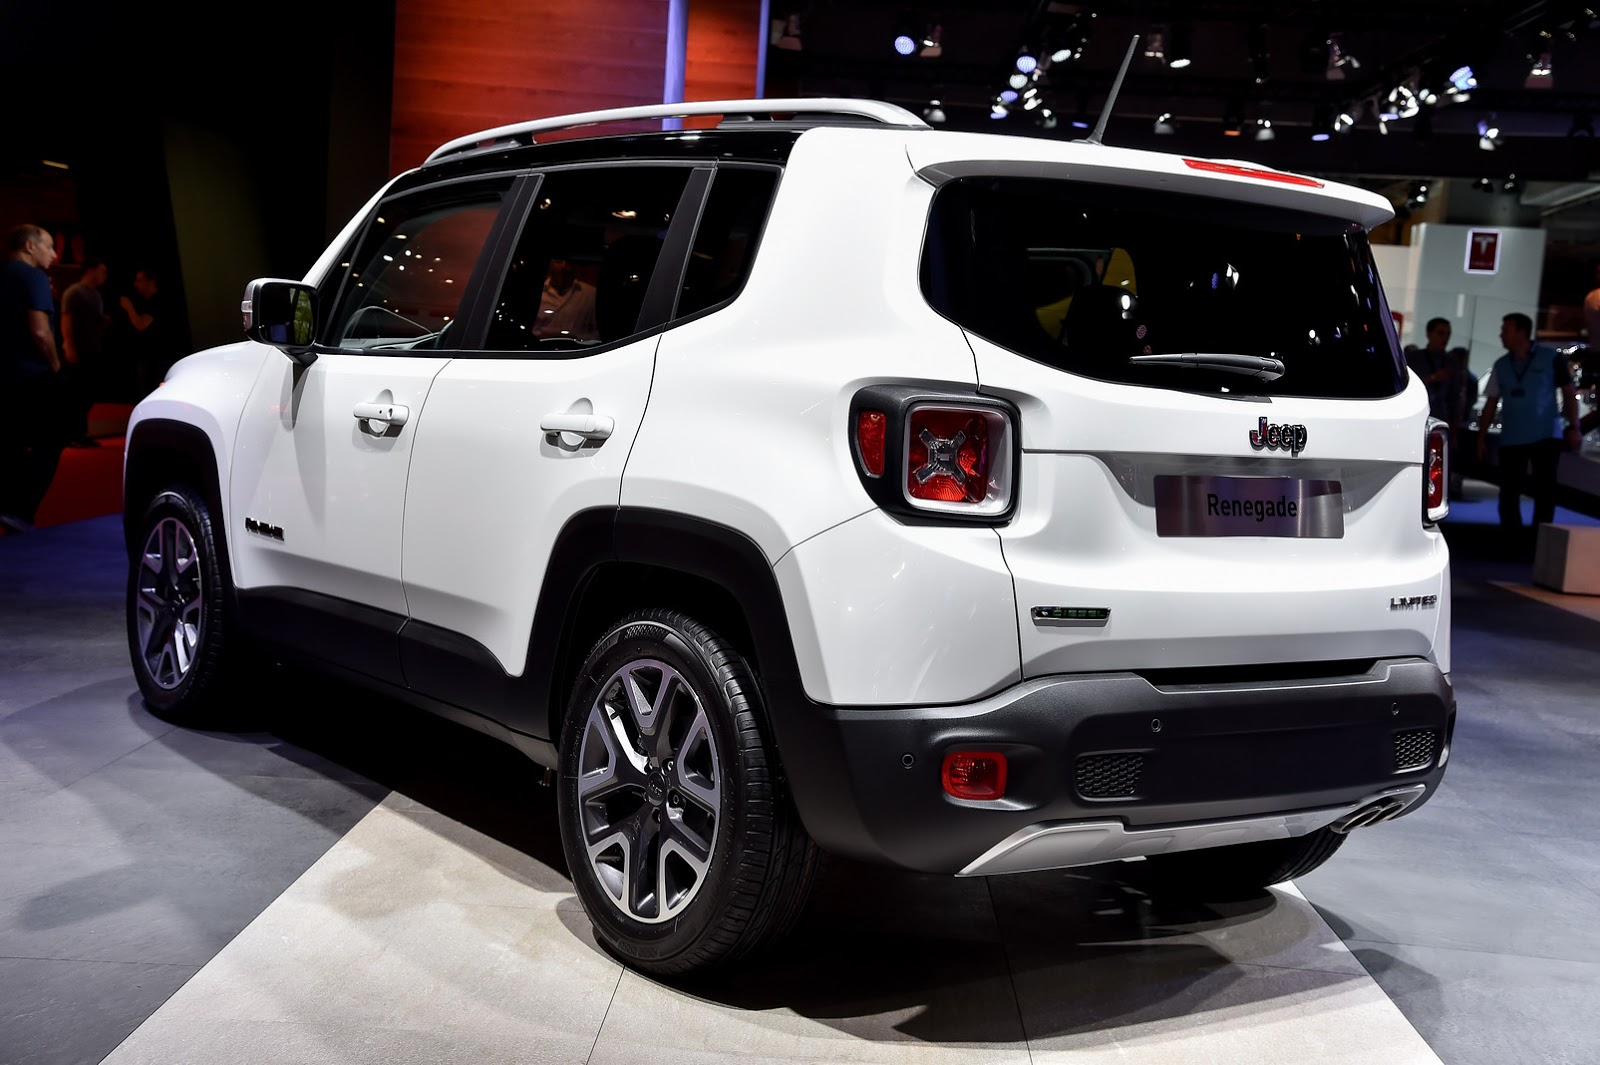 new jeep renegade 39 s us pricing reportedly leaked ranges from 17 995 to 25 995 carscoops. Black Bedroom Furniture Sets. Home Design Ideas